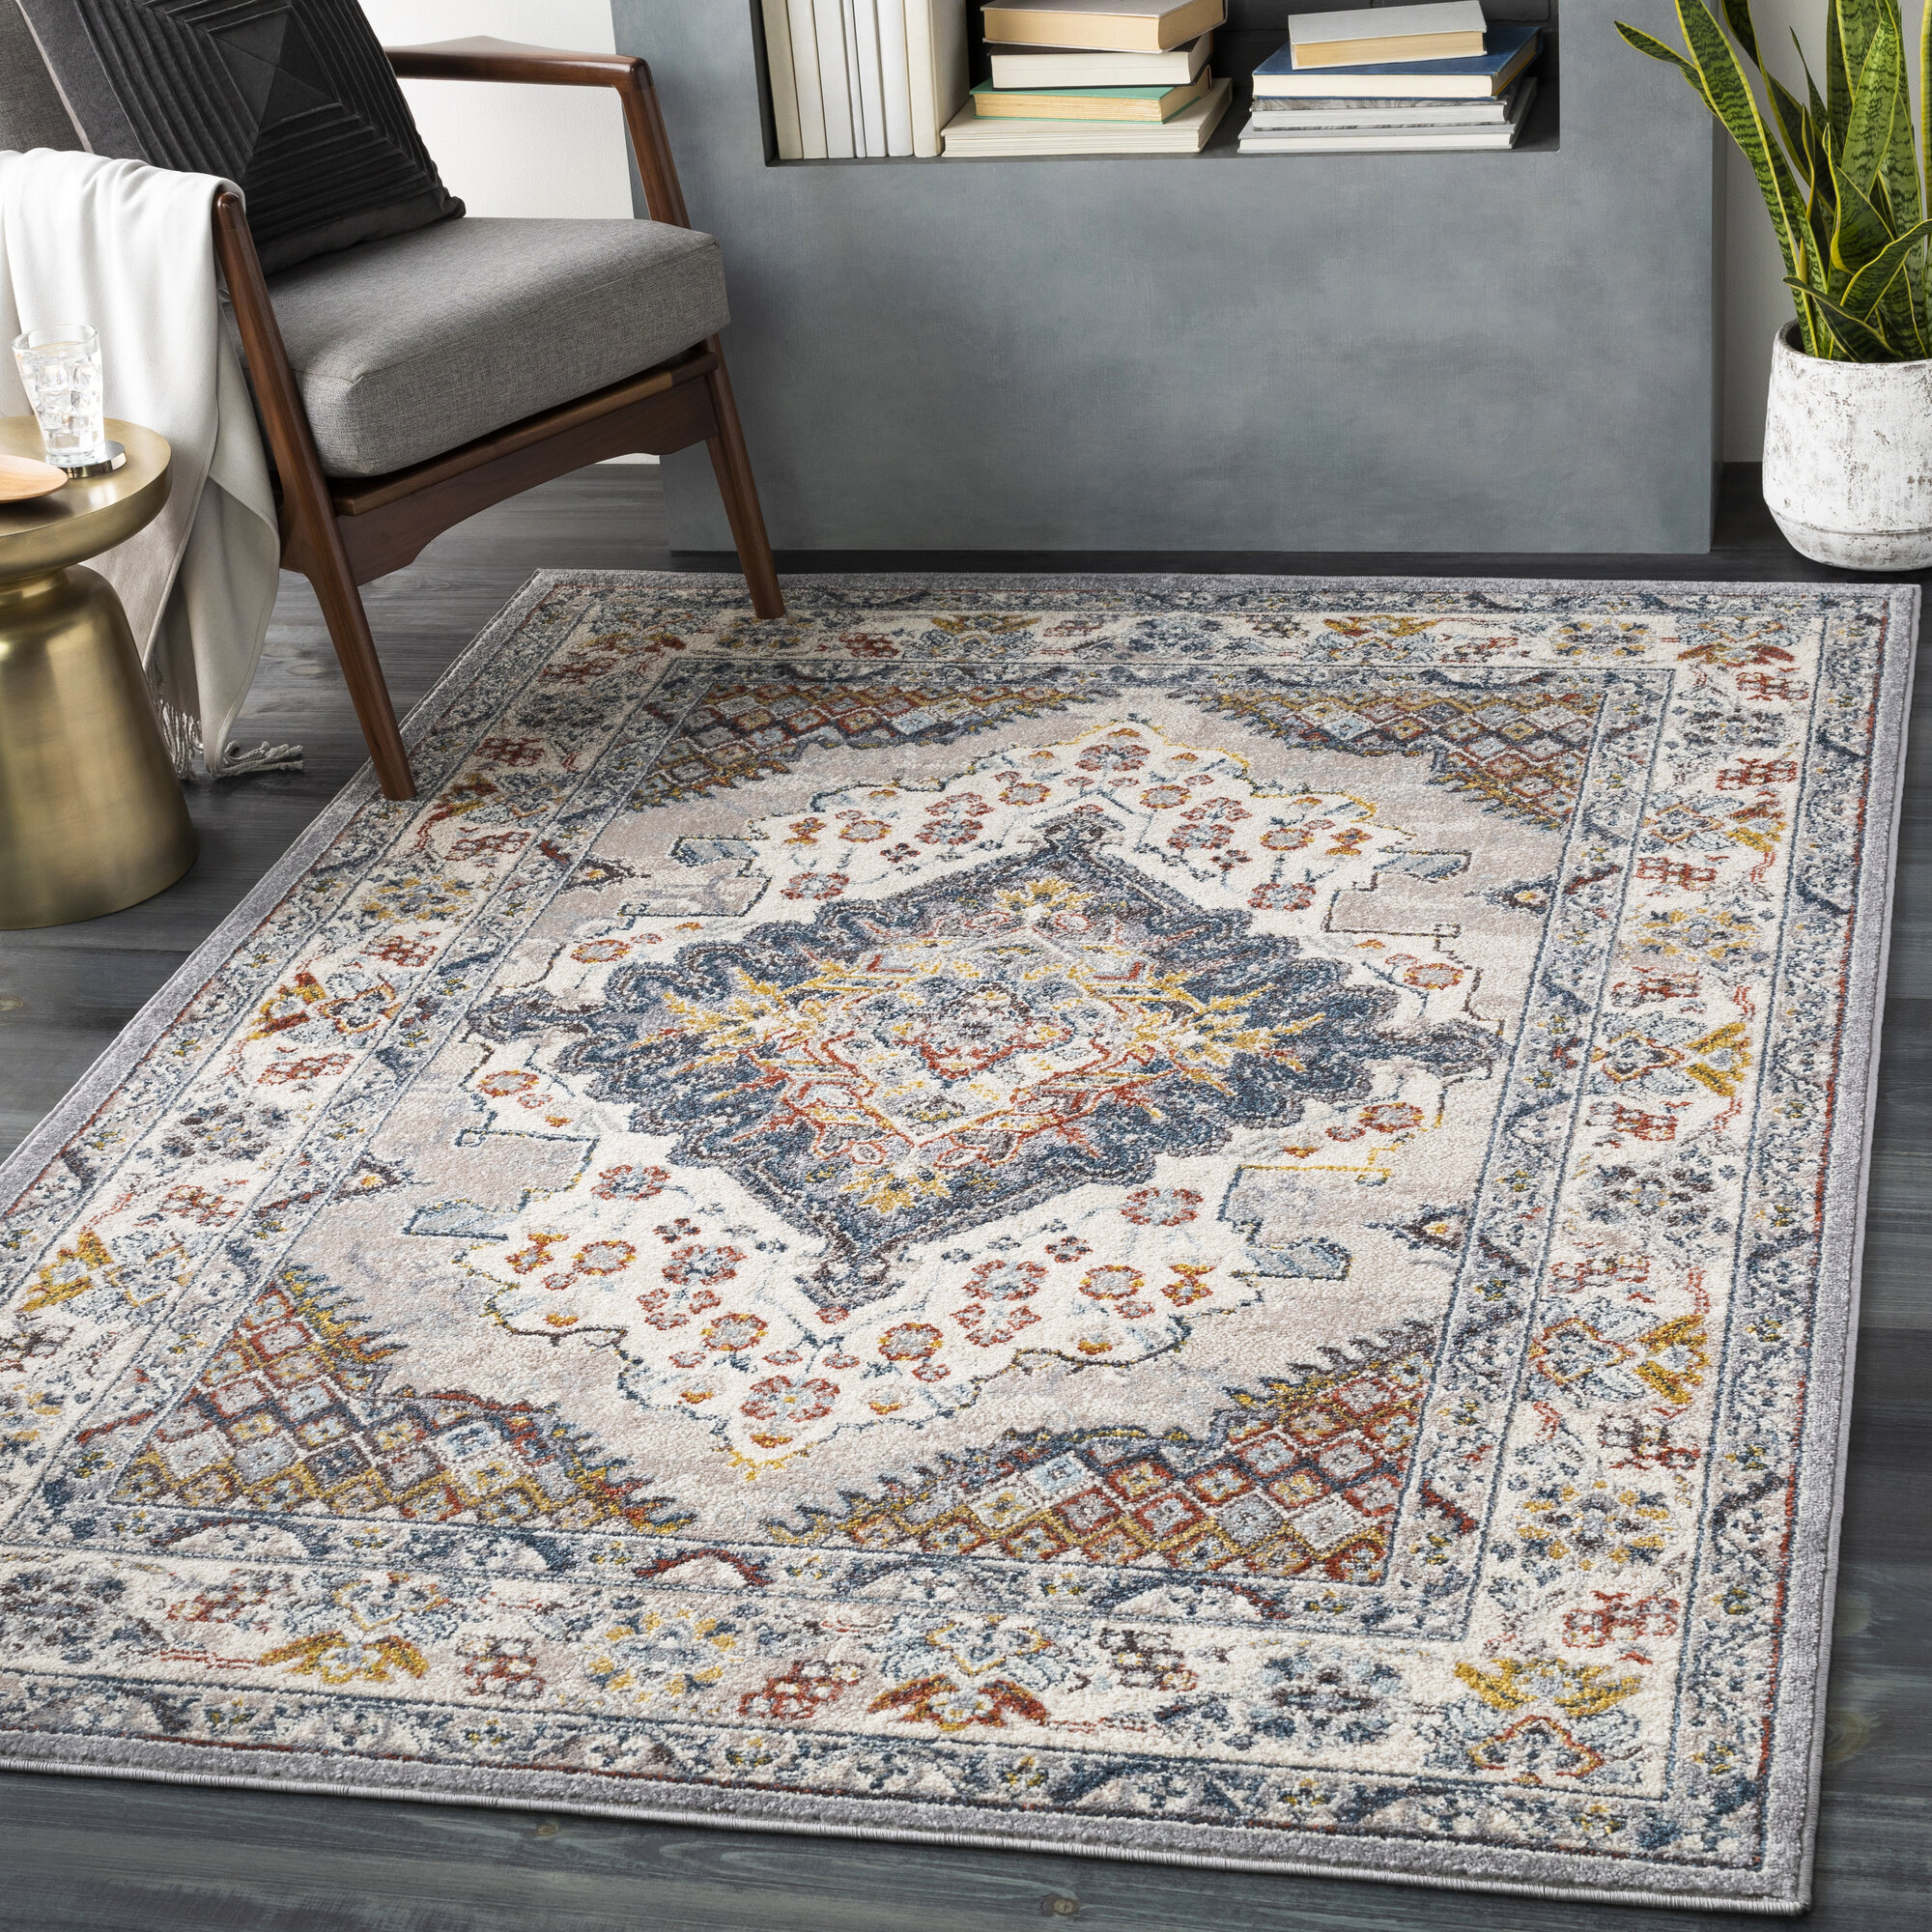 Area Rugs Free Shipping Over 35 Wayfair